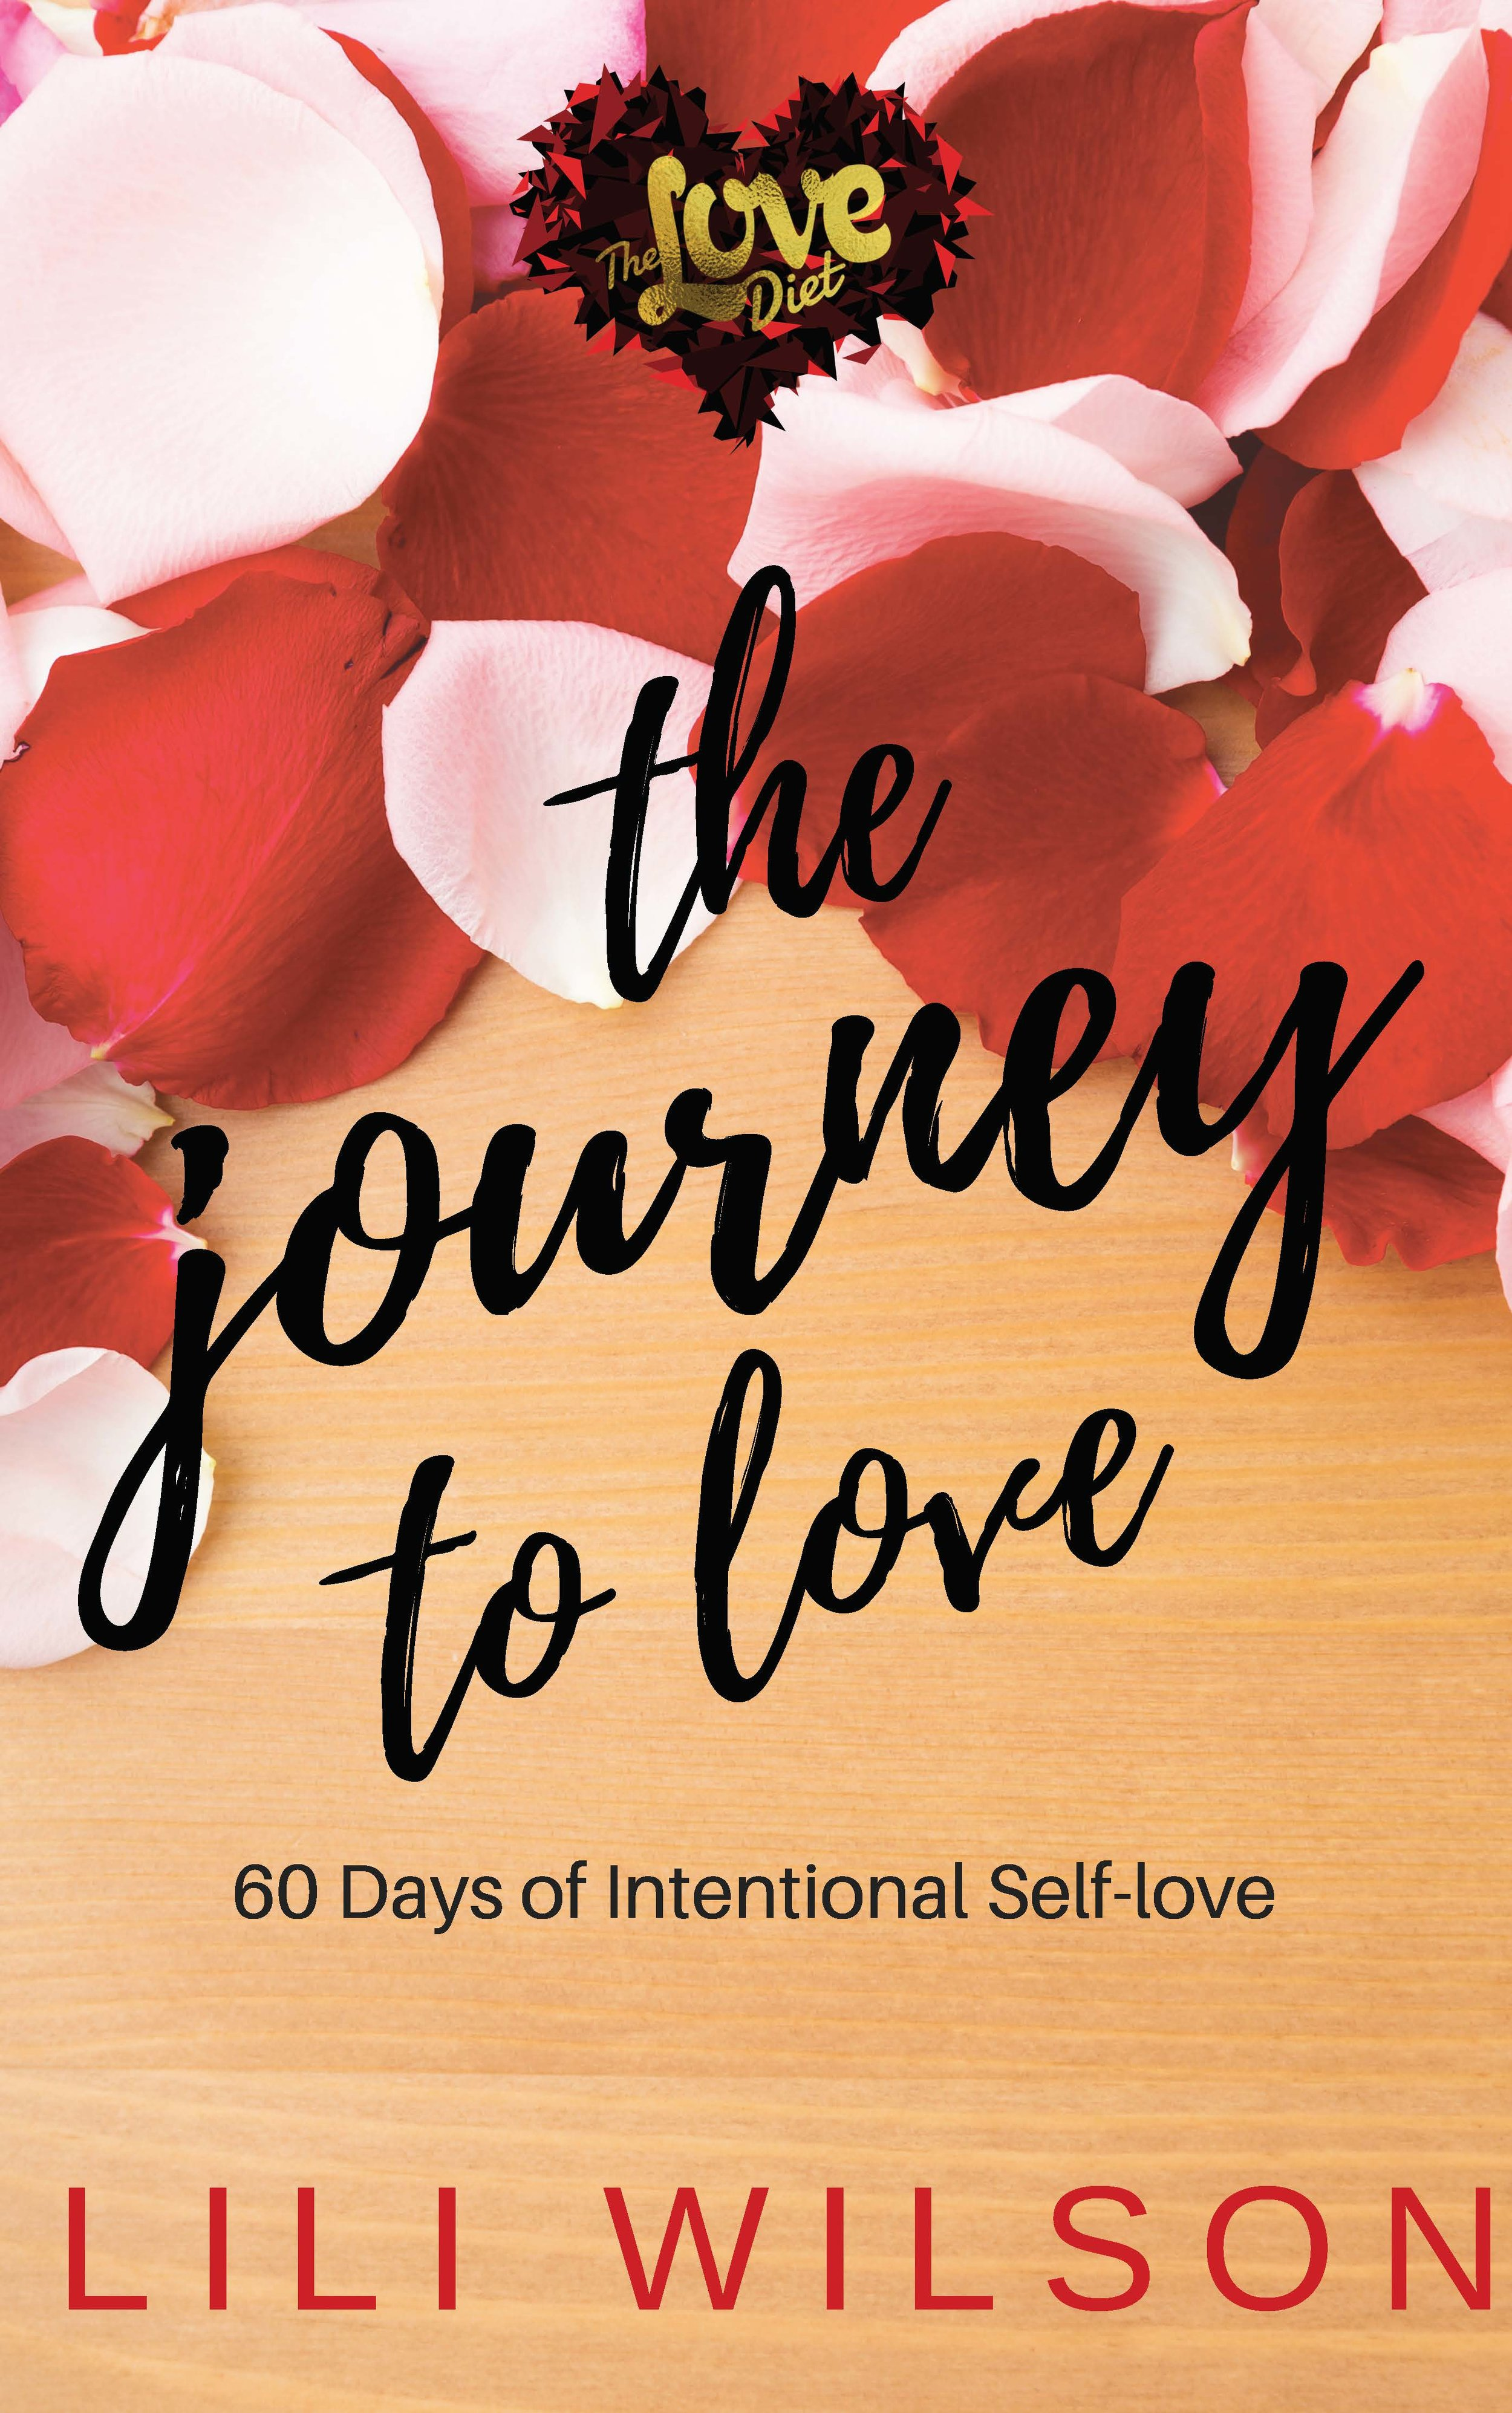 It's All About The Journey…. - The Journey To Love is the follow-up to the original 22-day process, the Love Diet. It's for all who are ready to delve a bit deeper into 100% self-love and 100% authenticity! This journey is divided into two 30-day sections for your convenience. During the process, you have the option to reflect, ponder, and respond to the daily prompt.Author, Lili Wilson, was inspired to take this journey to help her process through a life transition with grace. She was able to heal herself with affirmations, reflections, and consistency. Through this journey, you will find a renewed sense of self-empowerment and self-appreciation. As you show up, this process will show you who you are, what you deserve, how to set boundaries, and more.